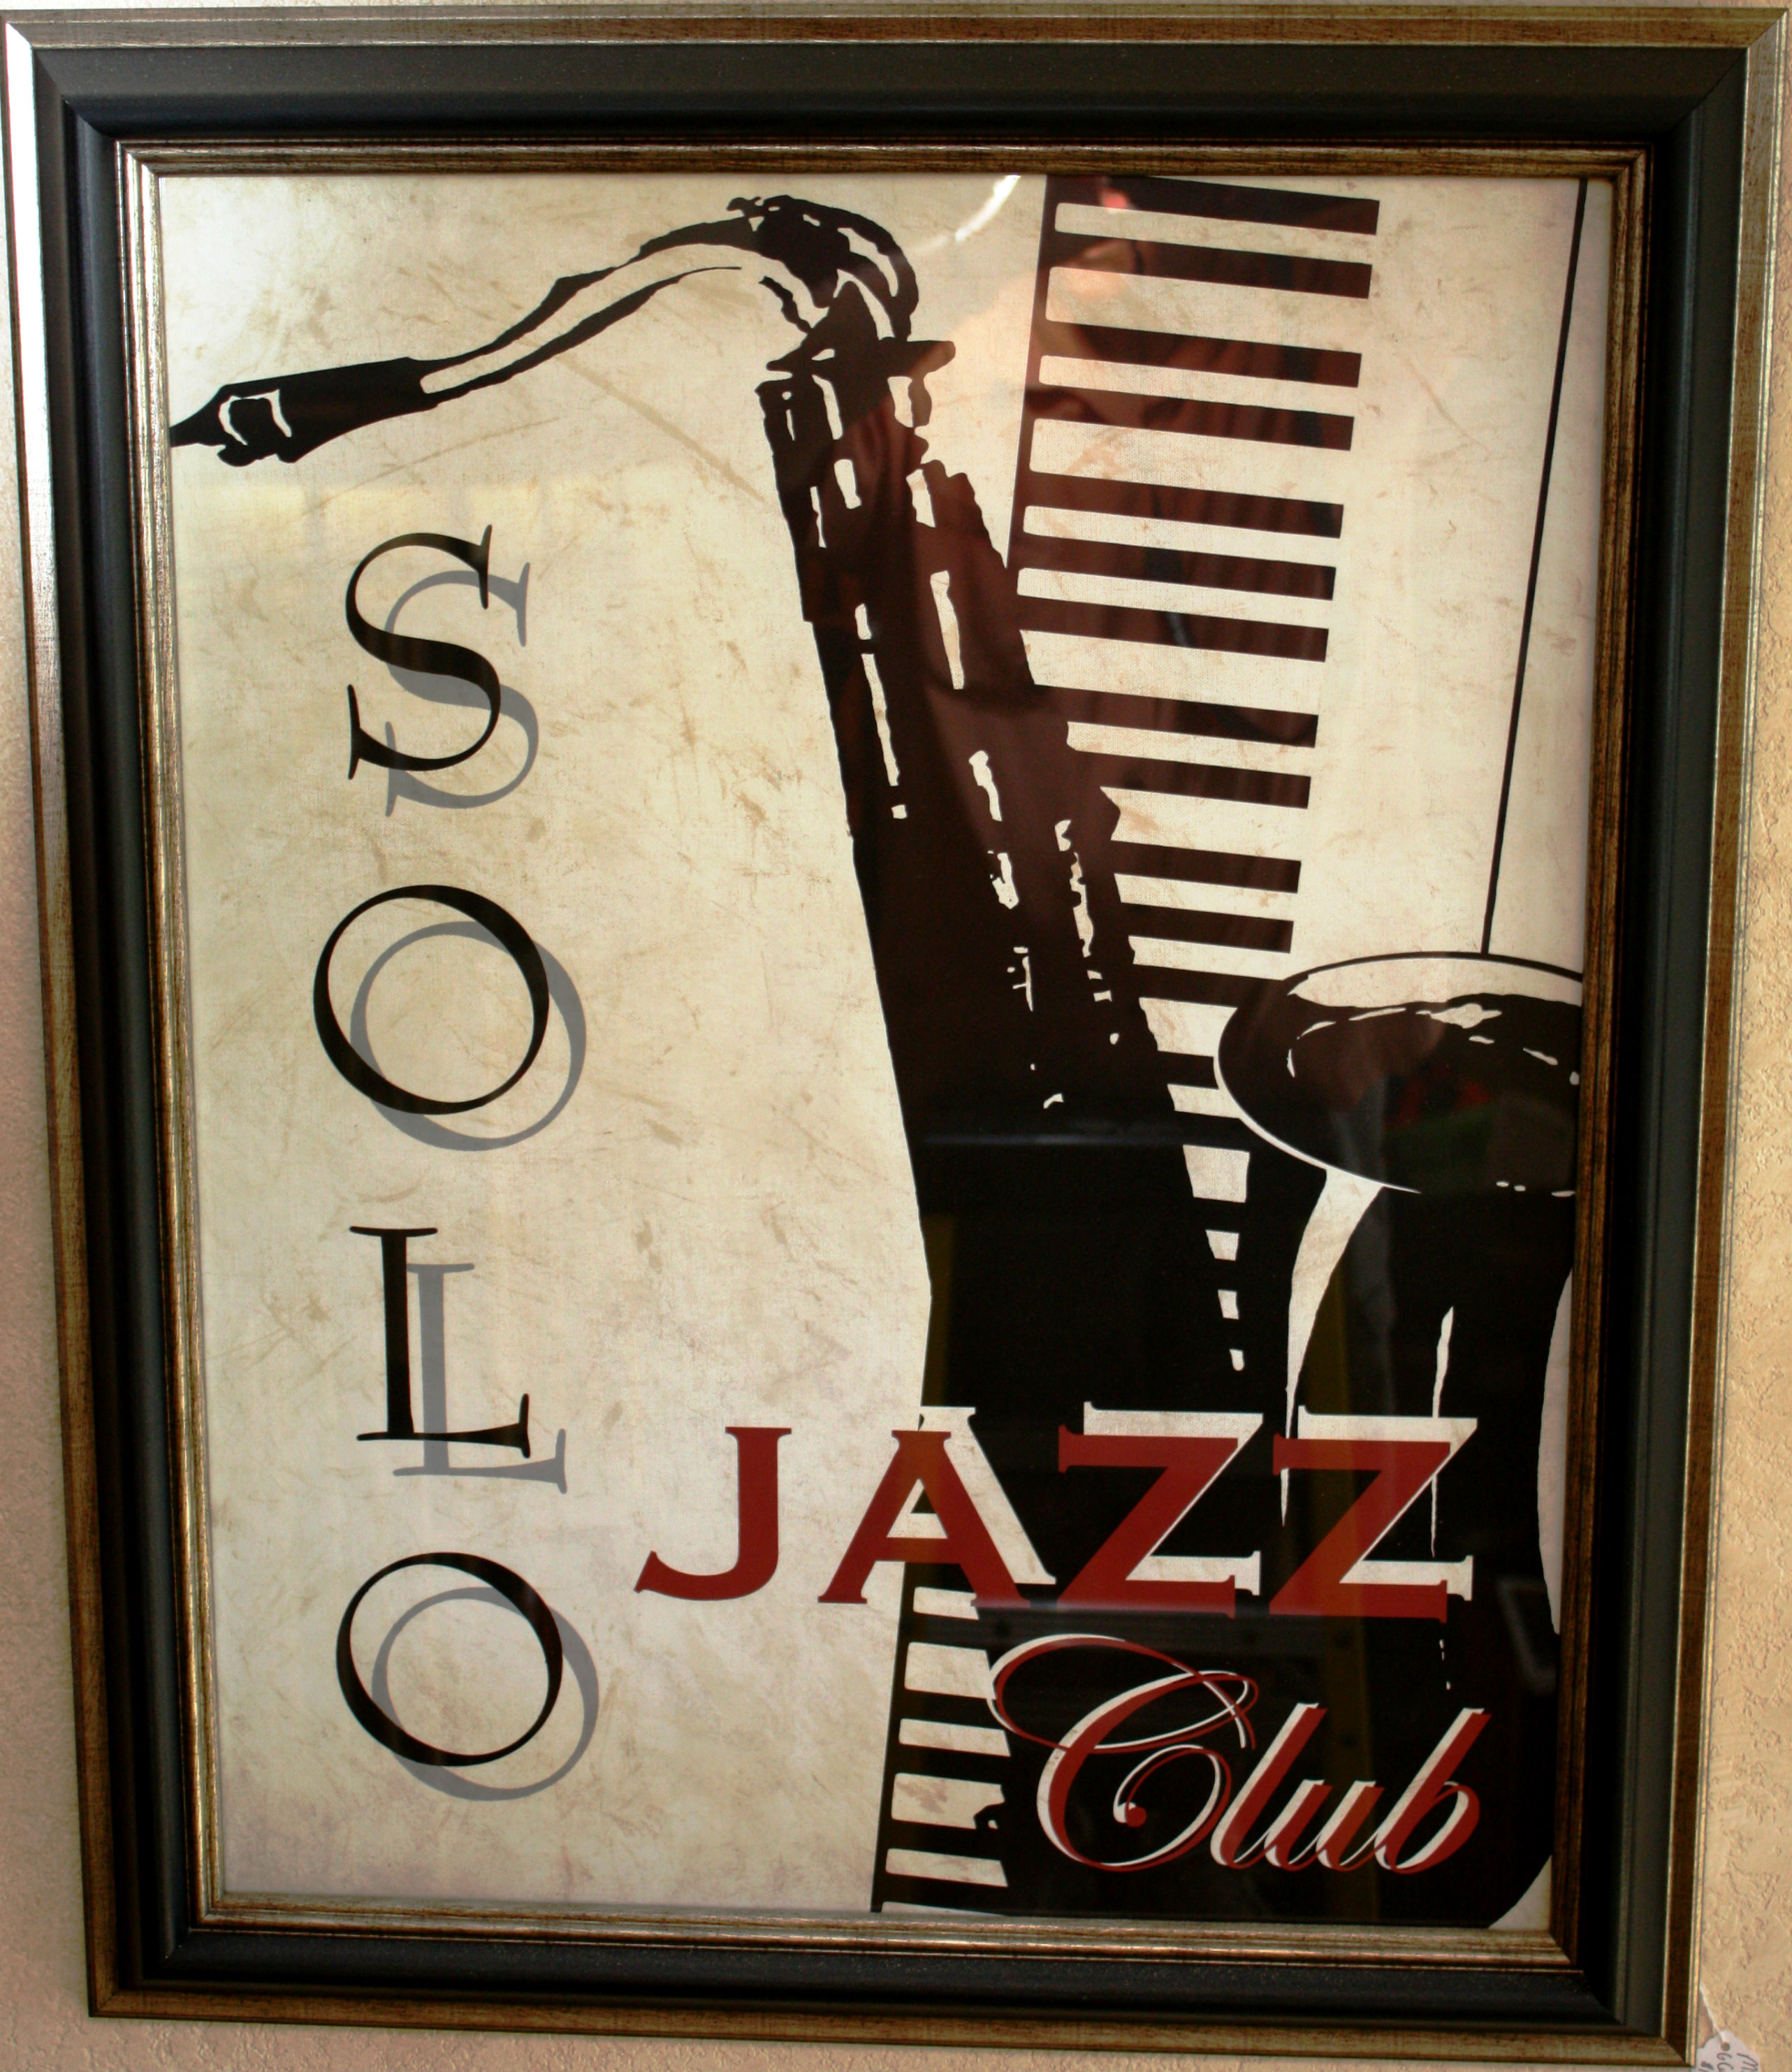 ART33 SOLO JAZZ